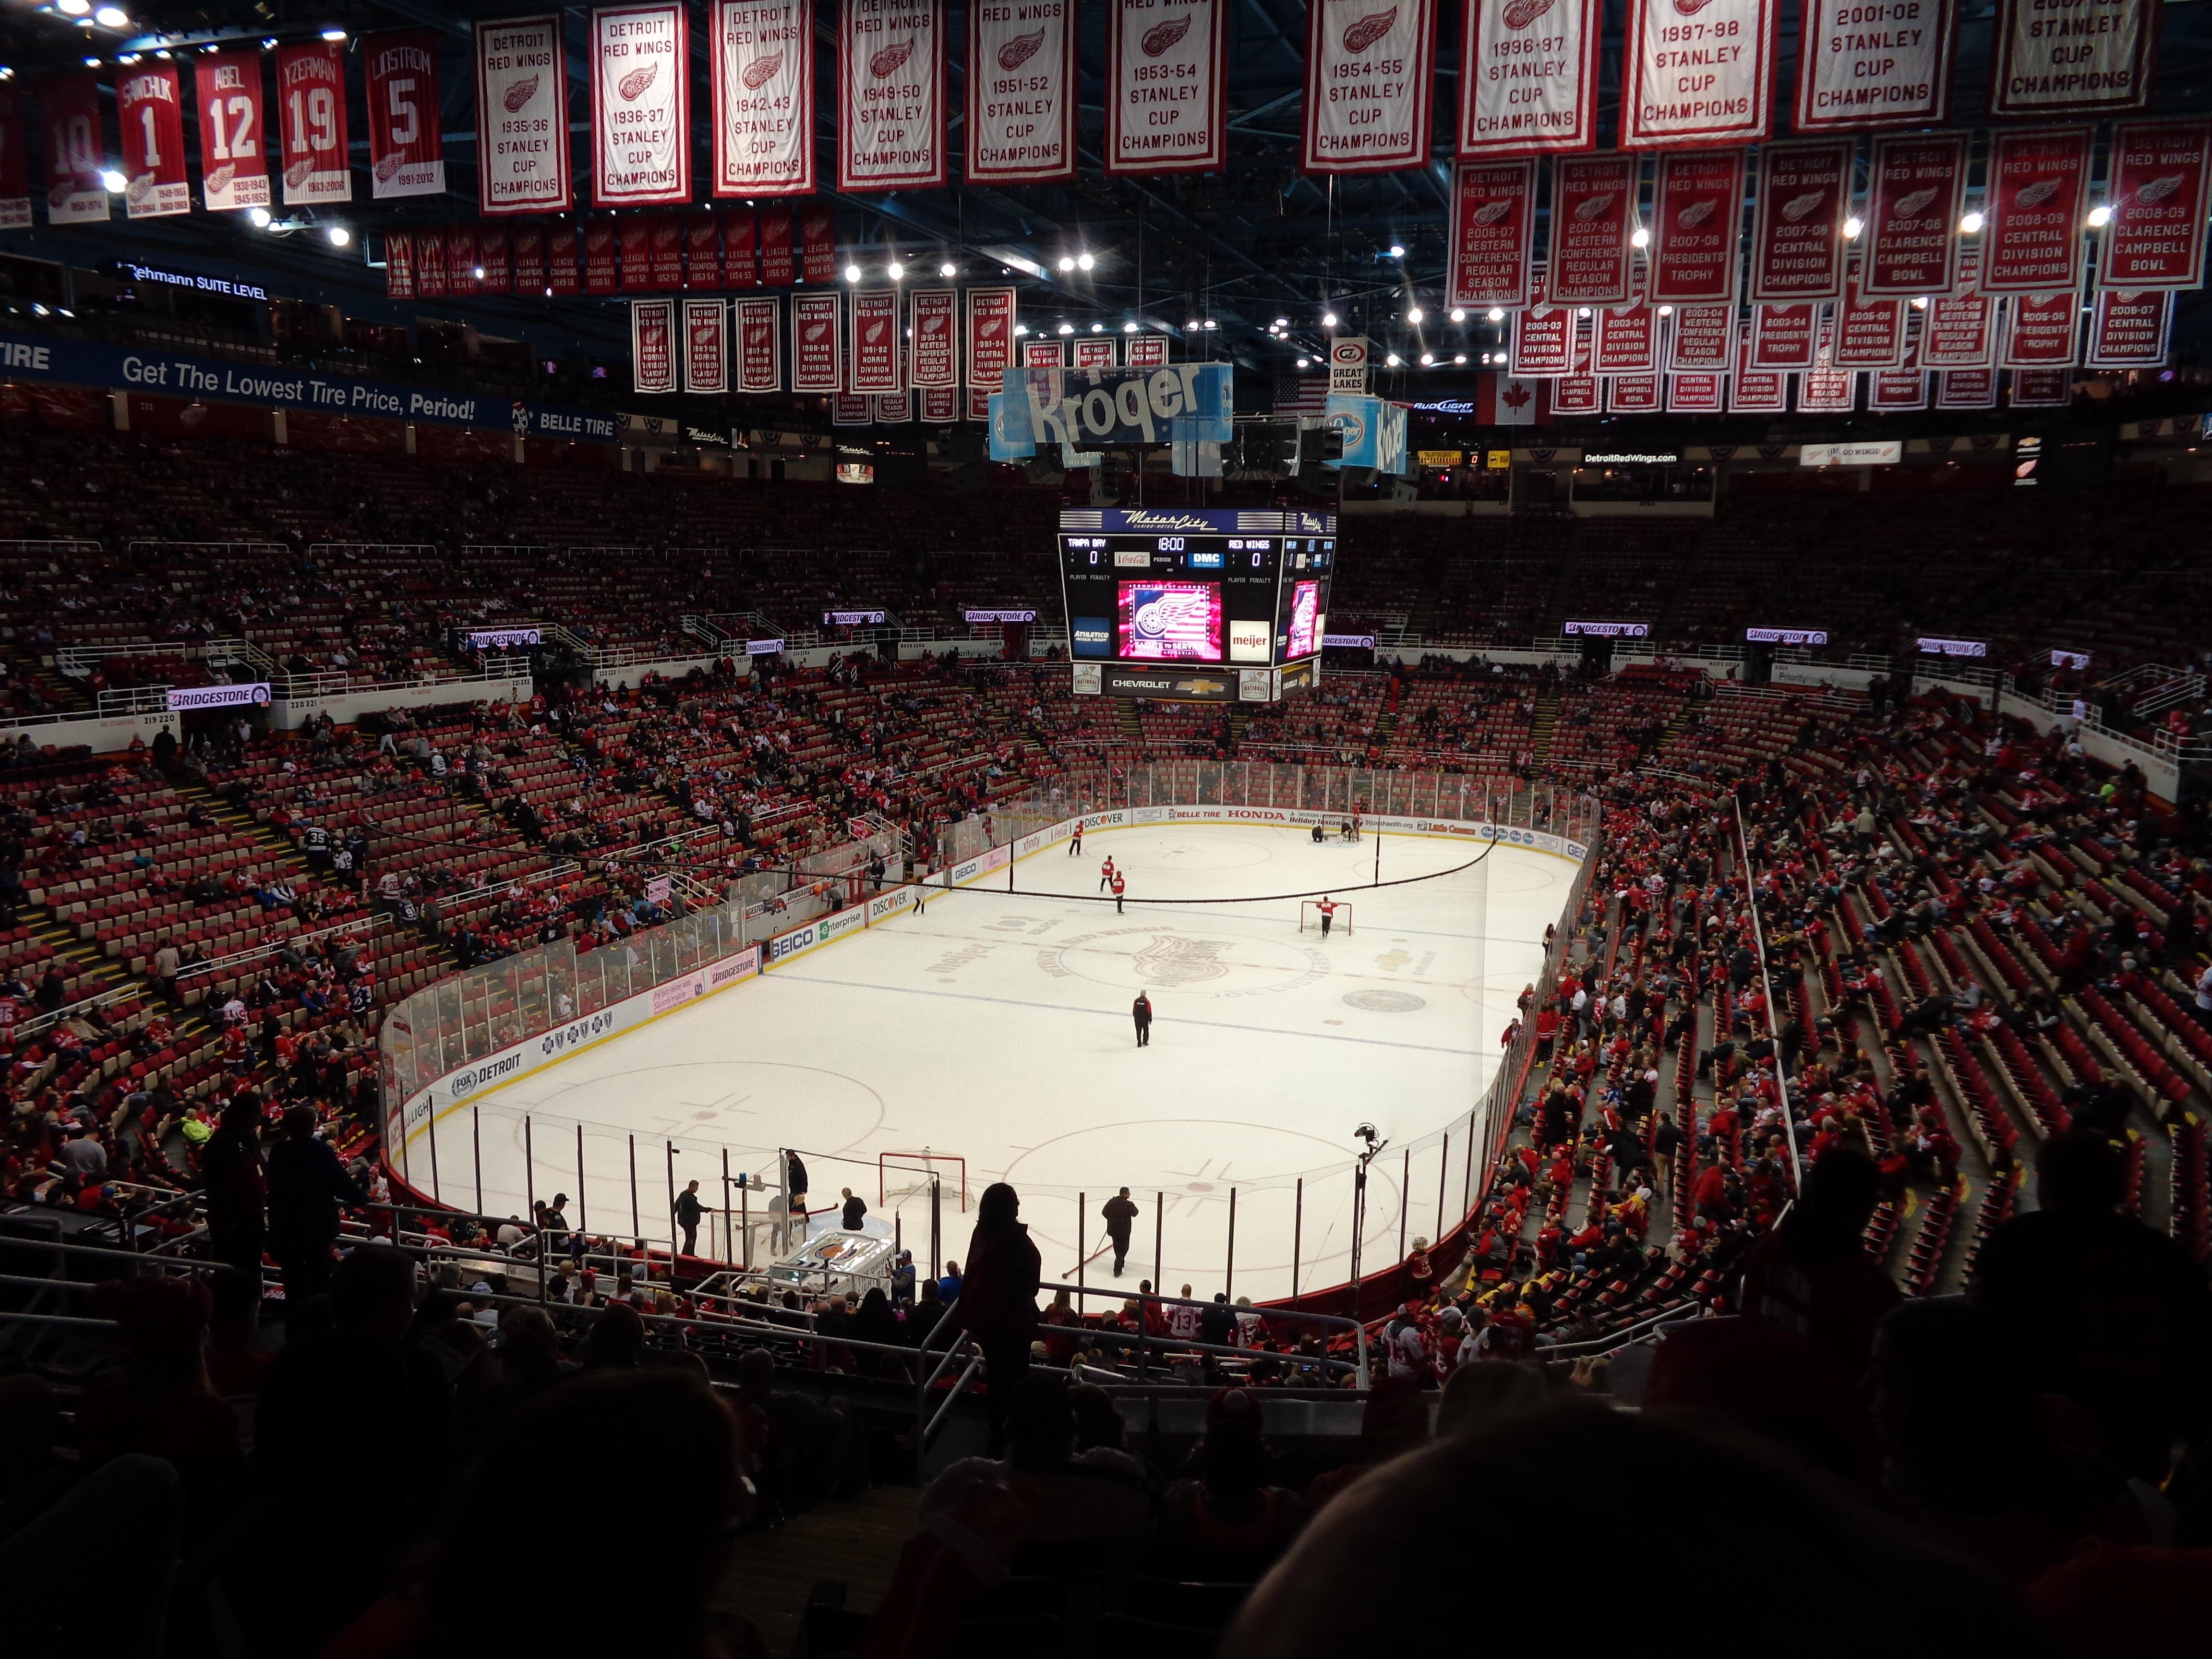 Joe Louis Arena Section 213a Row 13 Seat 13